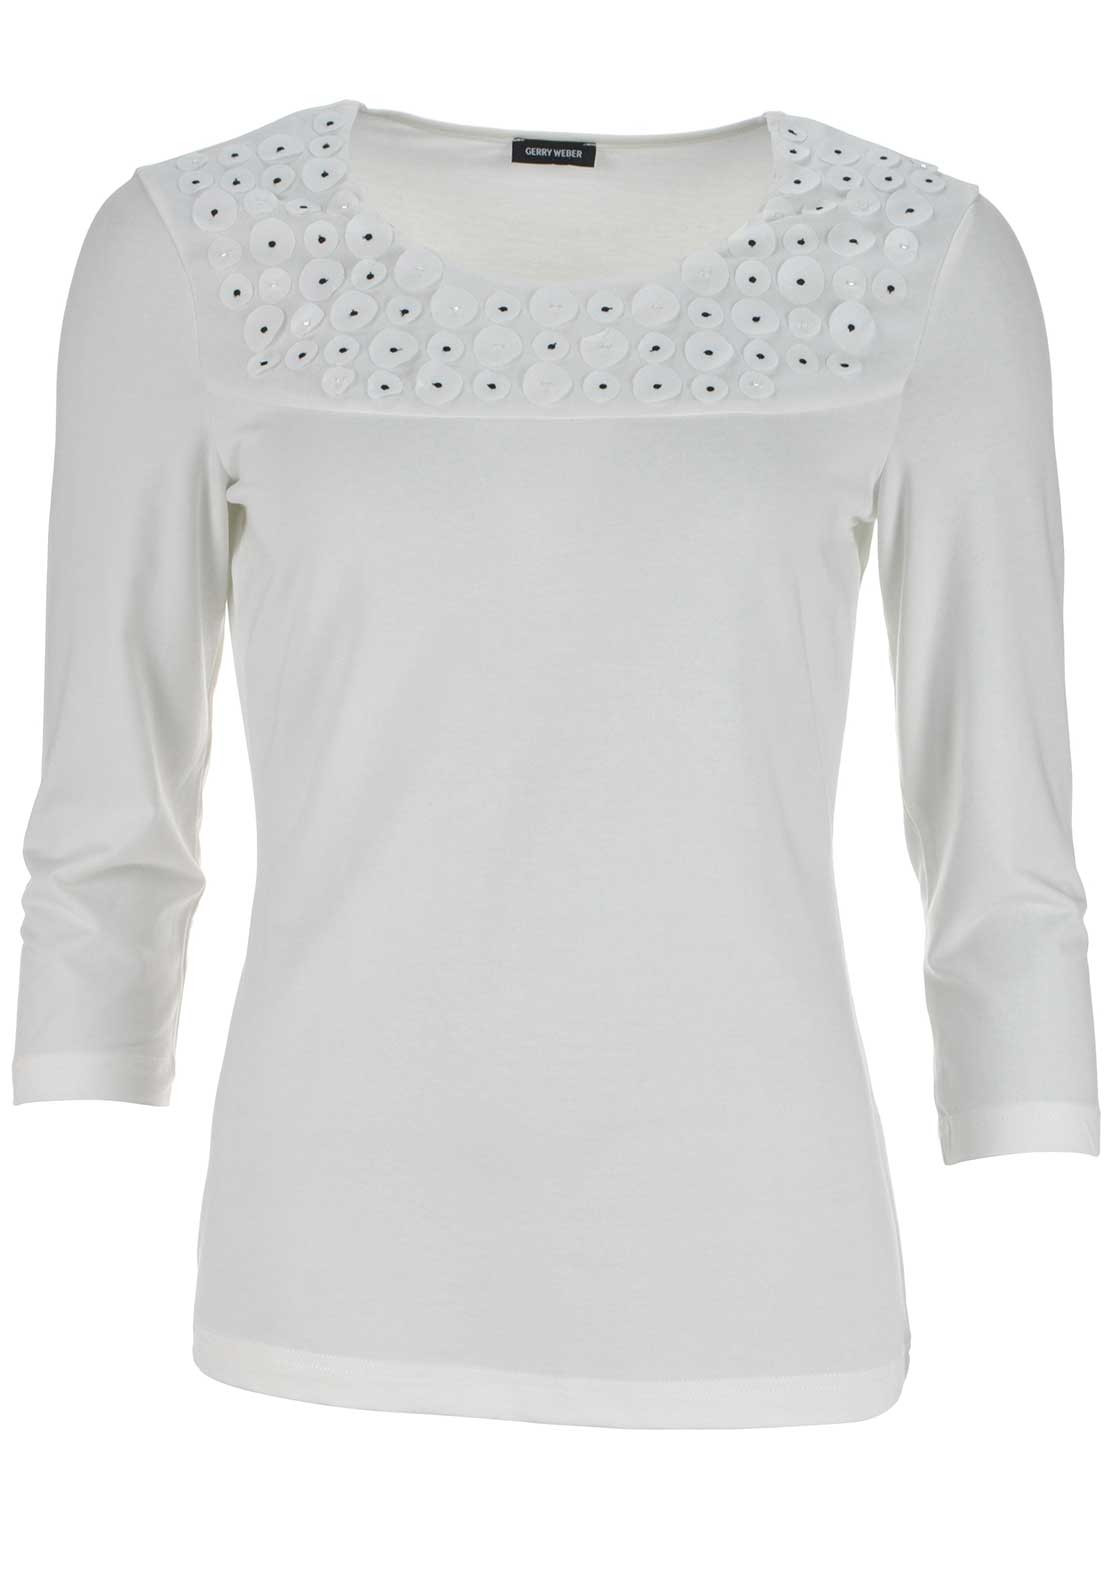 Gerry Weber 3D Circle Print Cropped Sleeve Top, Ivory